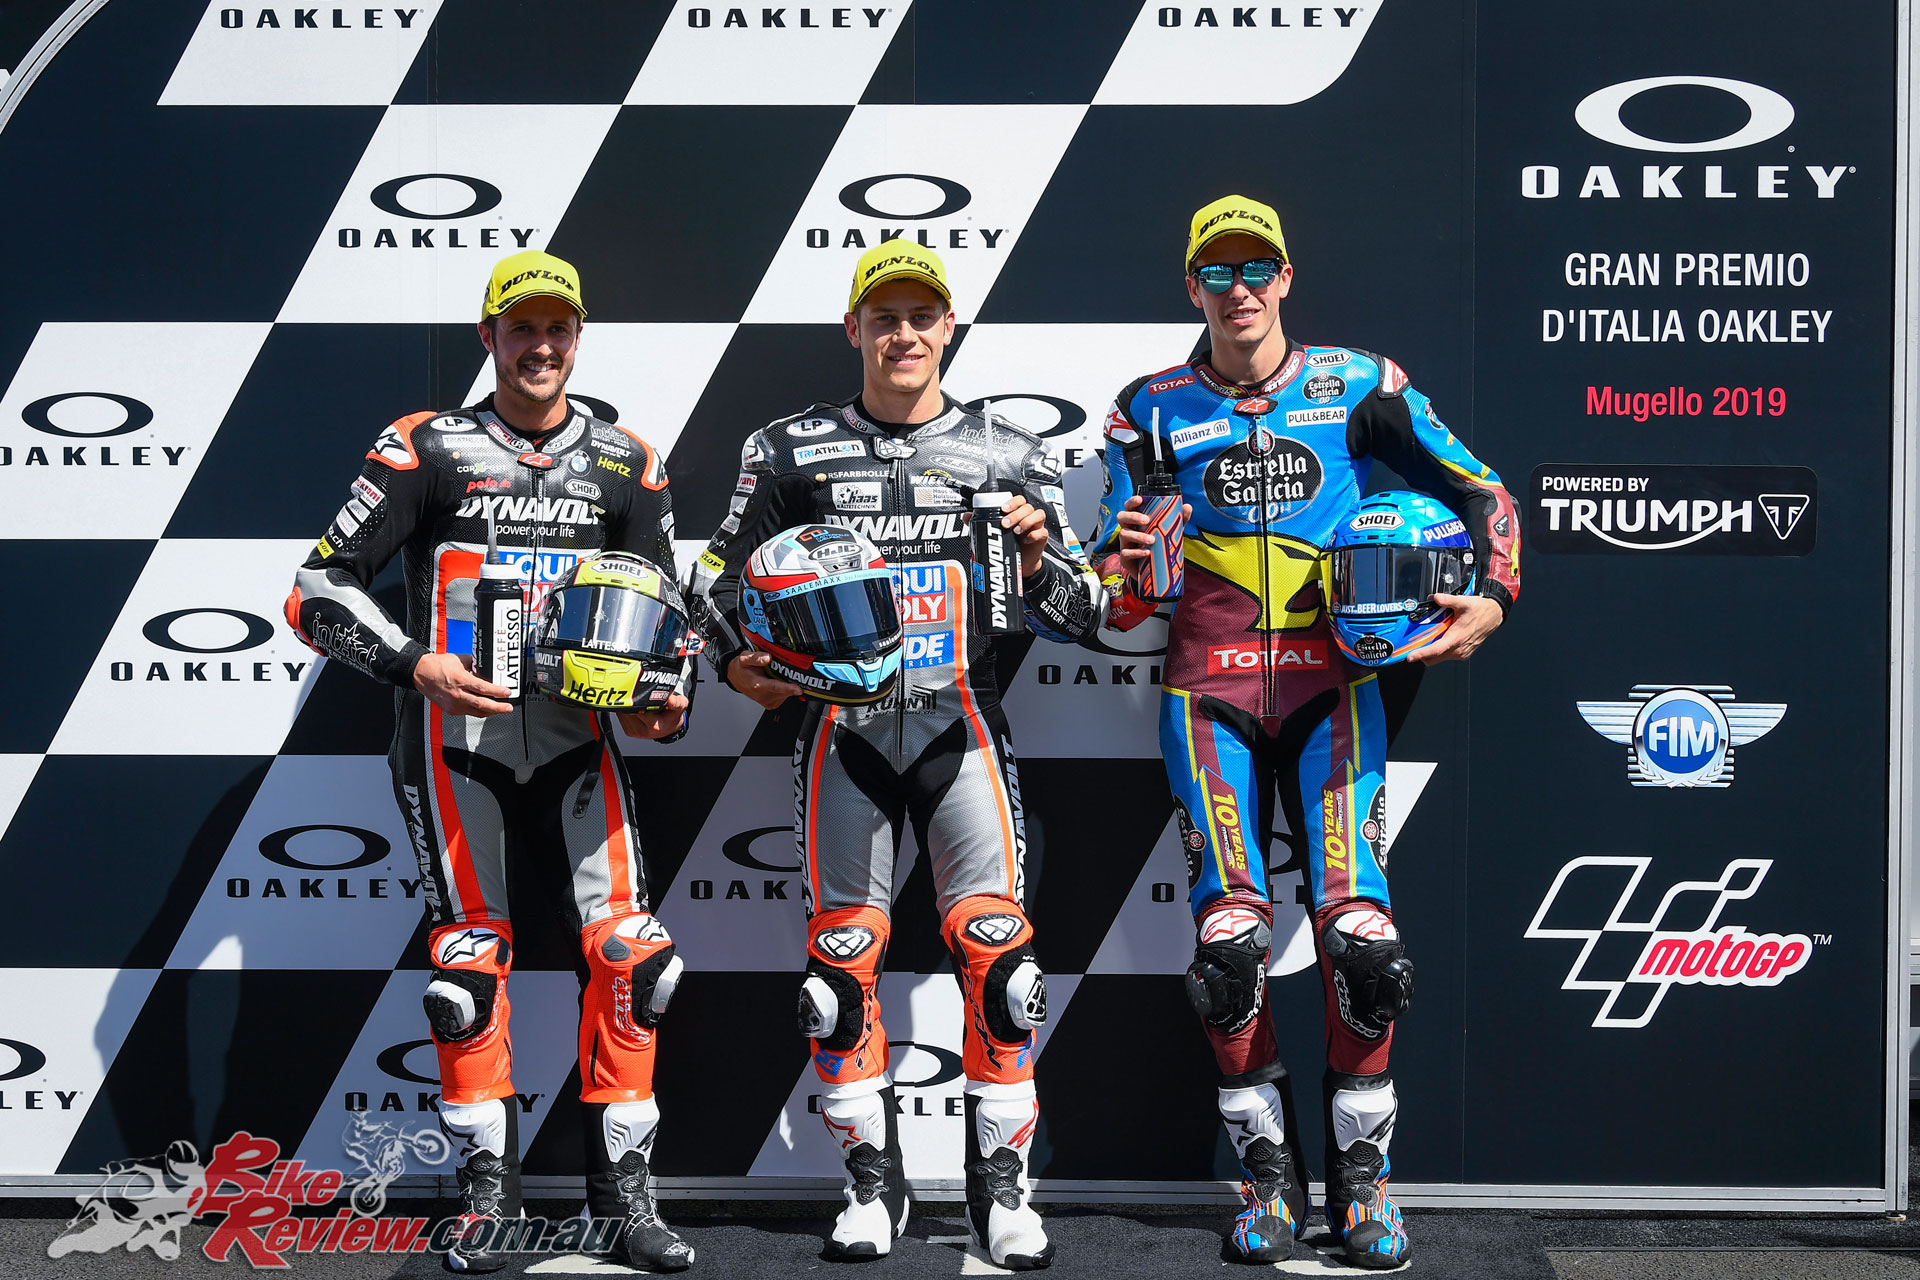 2019 Moto2 Mugello Qualifying Top 3 -